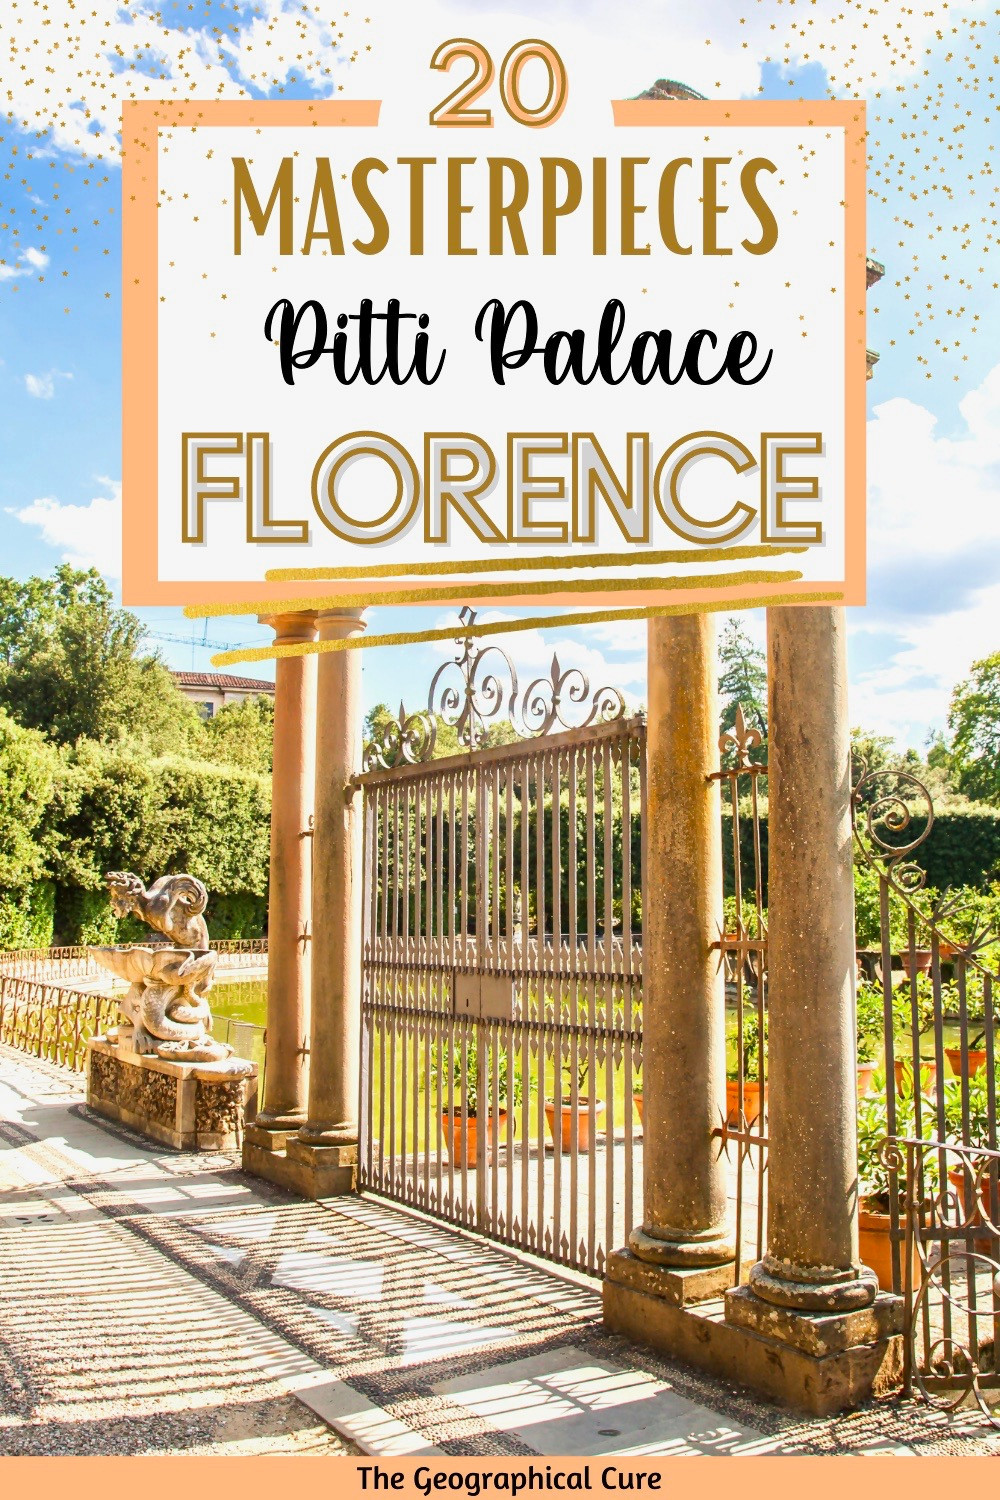 ultimate guide to visiting Florence's Pitti Palace